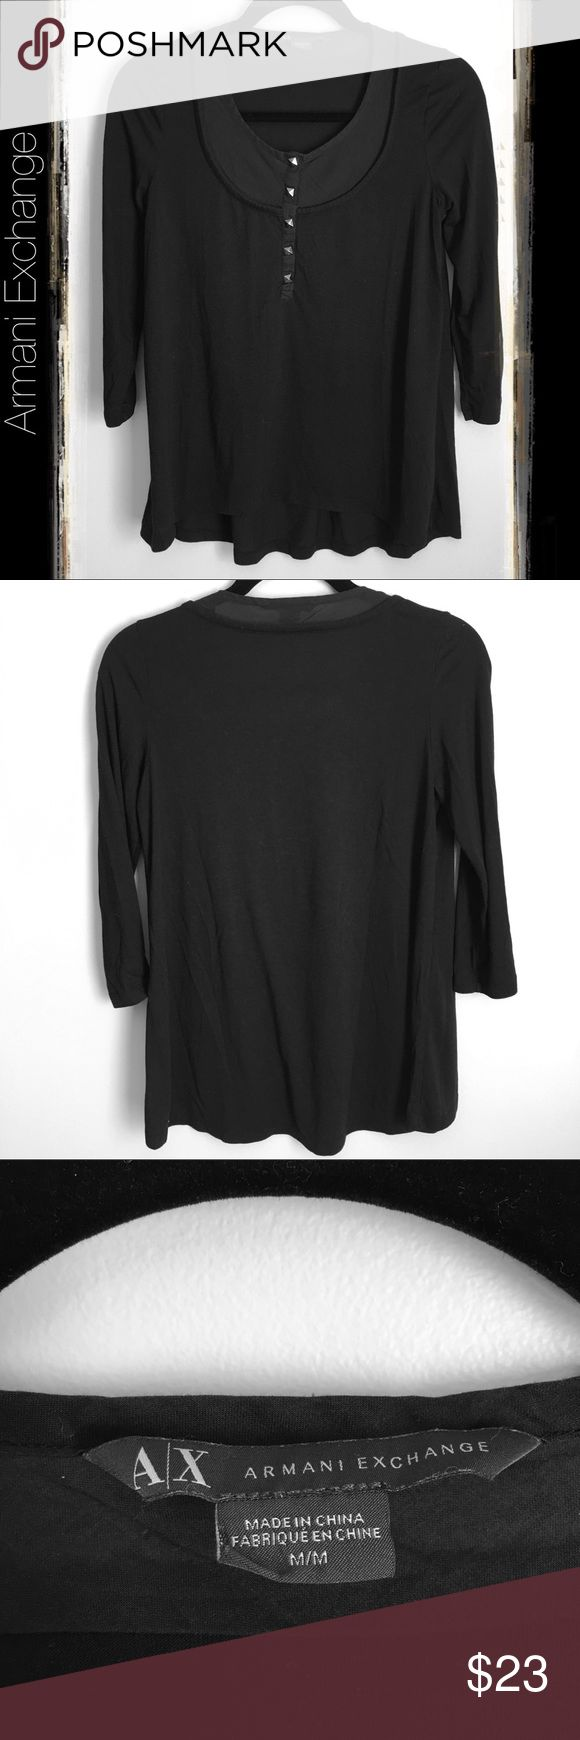 Armani Exchange 3/4 Sleeve Black Shirt Armani Exchange 3/4 sleeve black top with metal stud details. In great pre-loved condition. It's cut higher in the front and lower in the back. Perfect to pair with leggings or jeans. 100% cotton. The neck piece is 50% polyester 50% modal. A/X Armani Exchange Tops Blouses